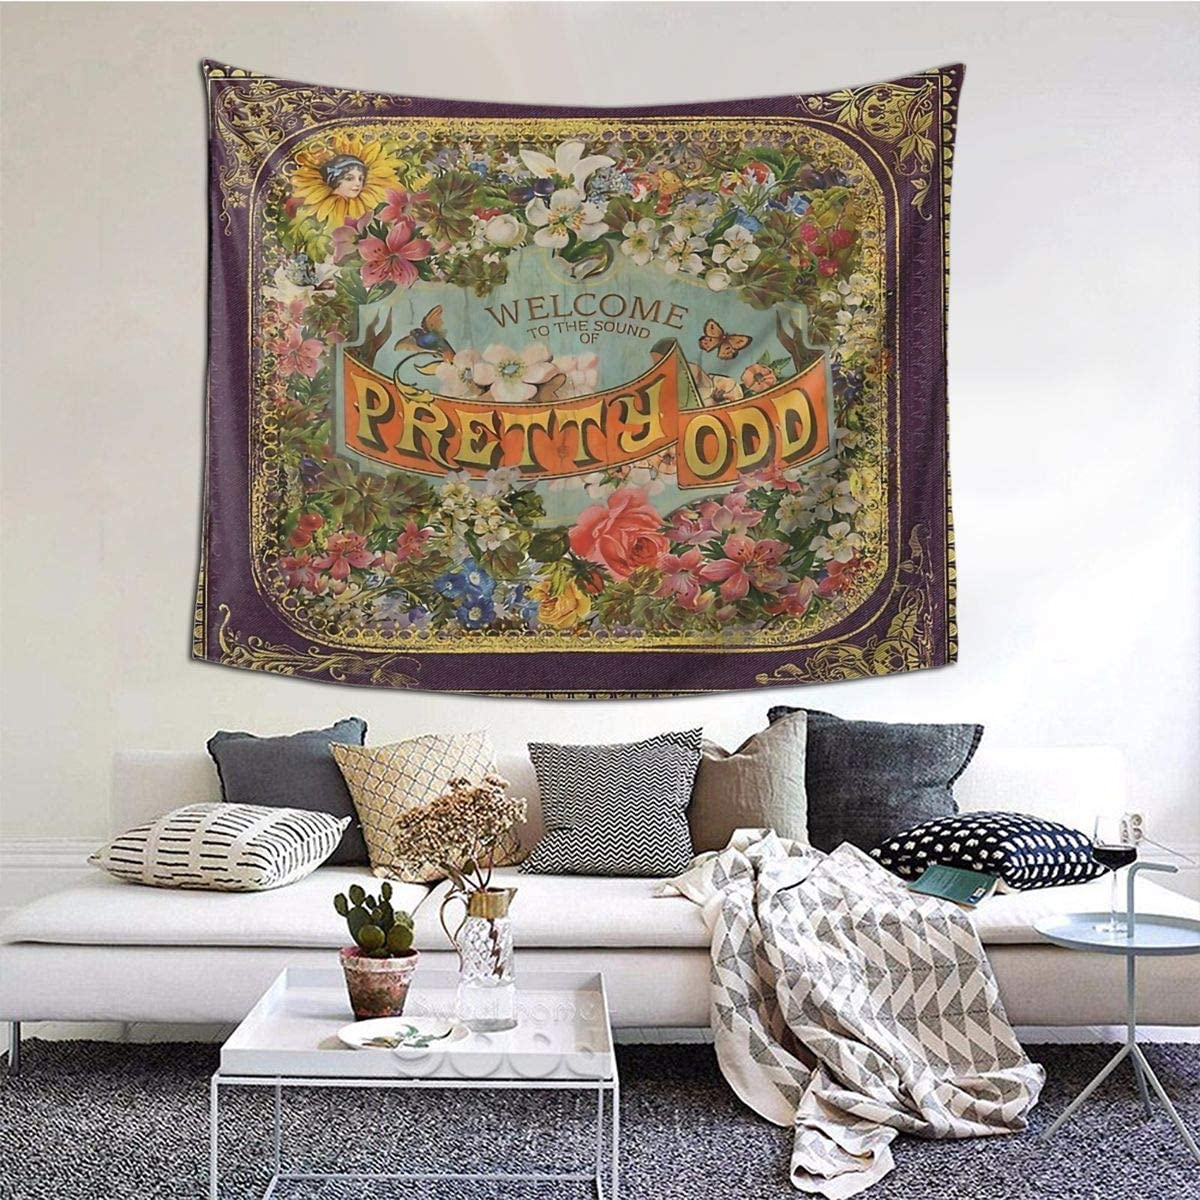 MOONSOON Welcome to The Sound of Pretty Odd Boutique Tapestry Wall Hanging Tapestry Vintage Tapestry Wall Tapestry Micro Fiber Peach Home Decor 59.1x51.2 in